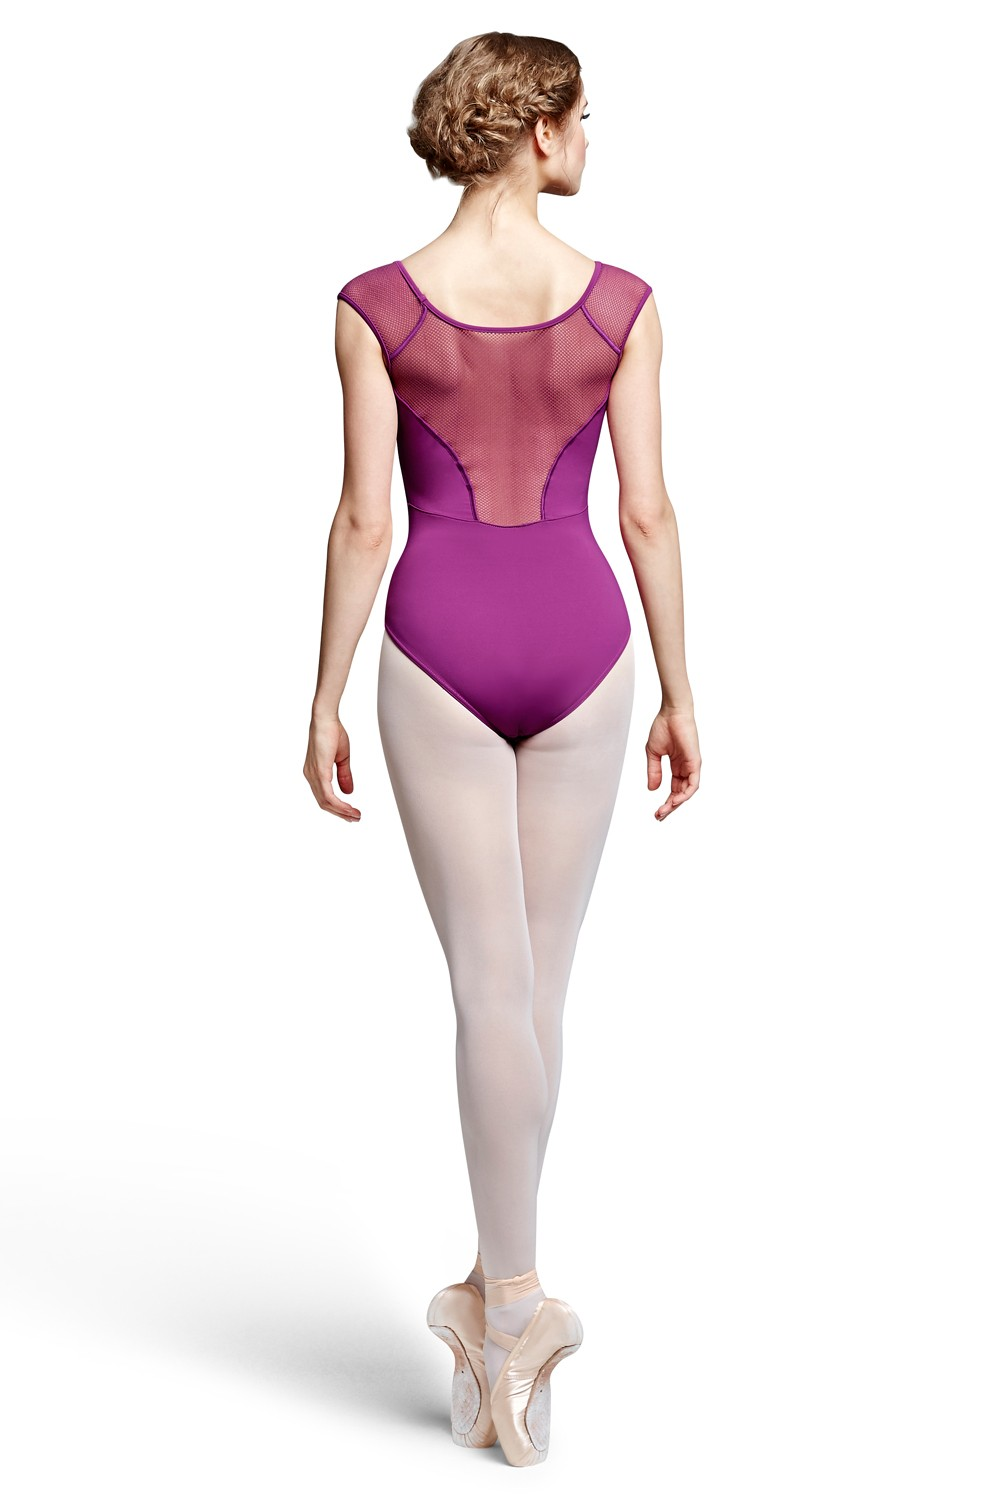 Amethyst Women's Dance Leotards